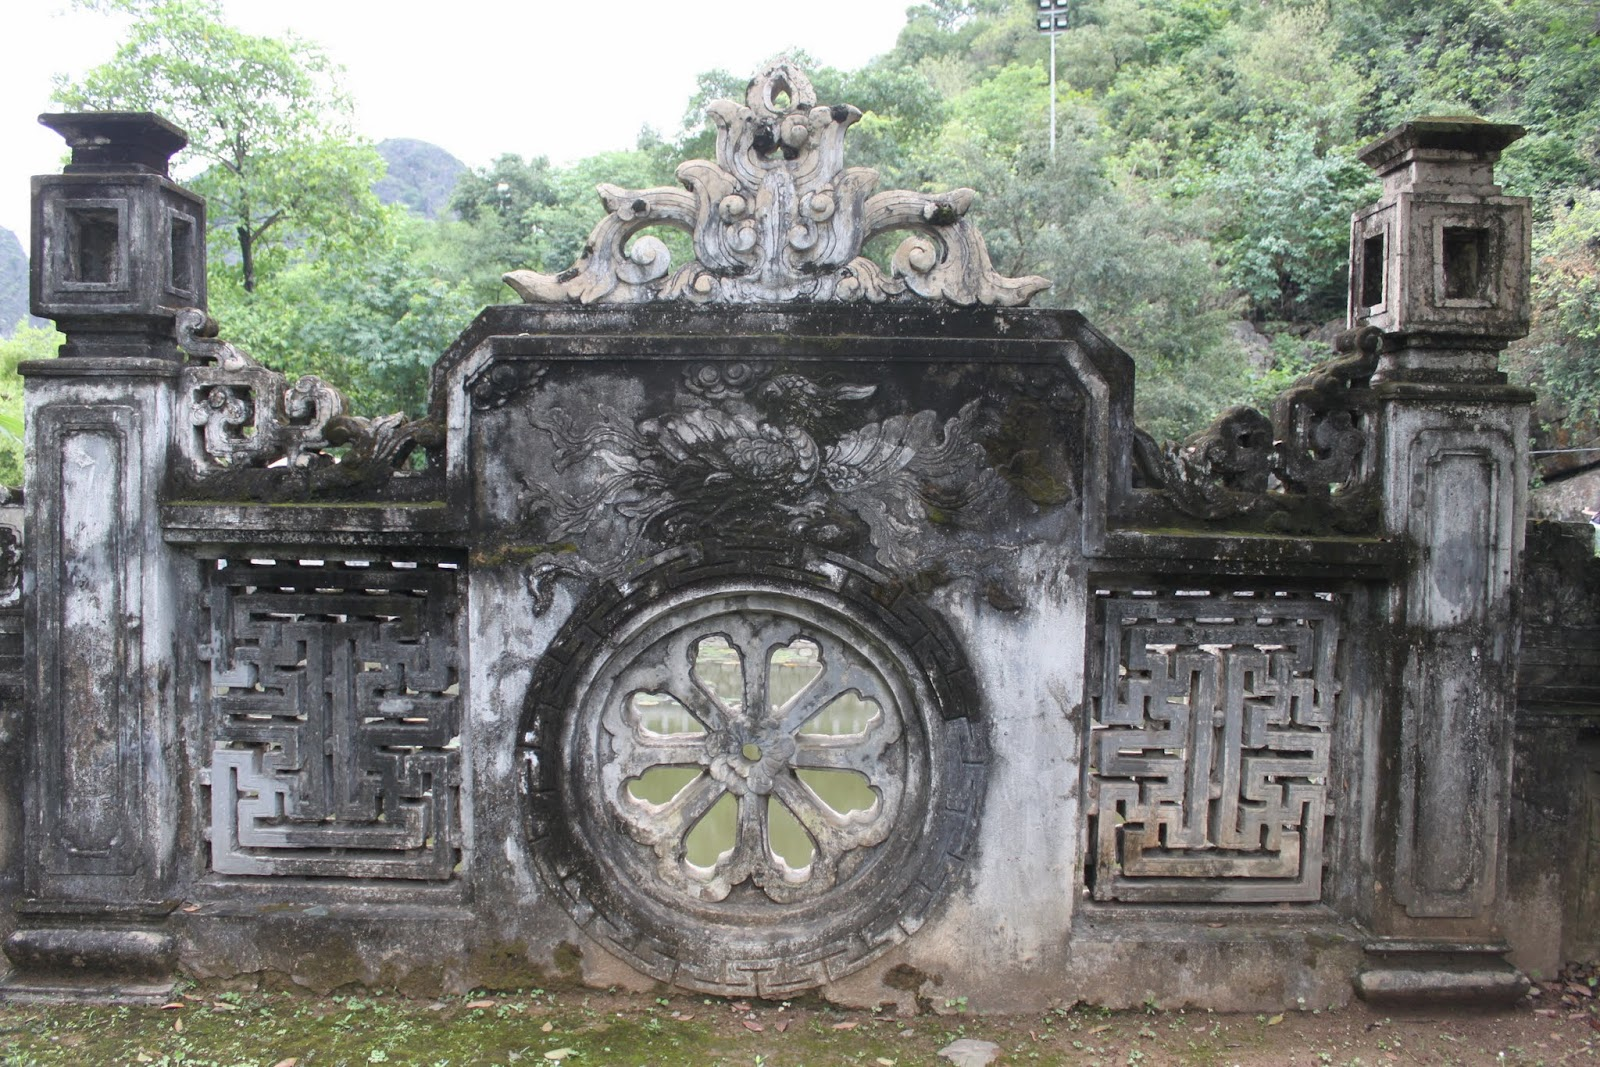 A well maintained of the unique structure nearby the lake at King Dinh Lake Temple at Hoa Lu Capital in Vietnam